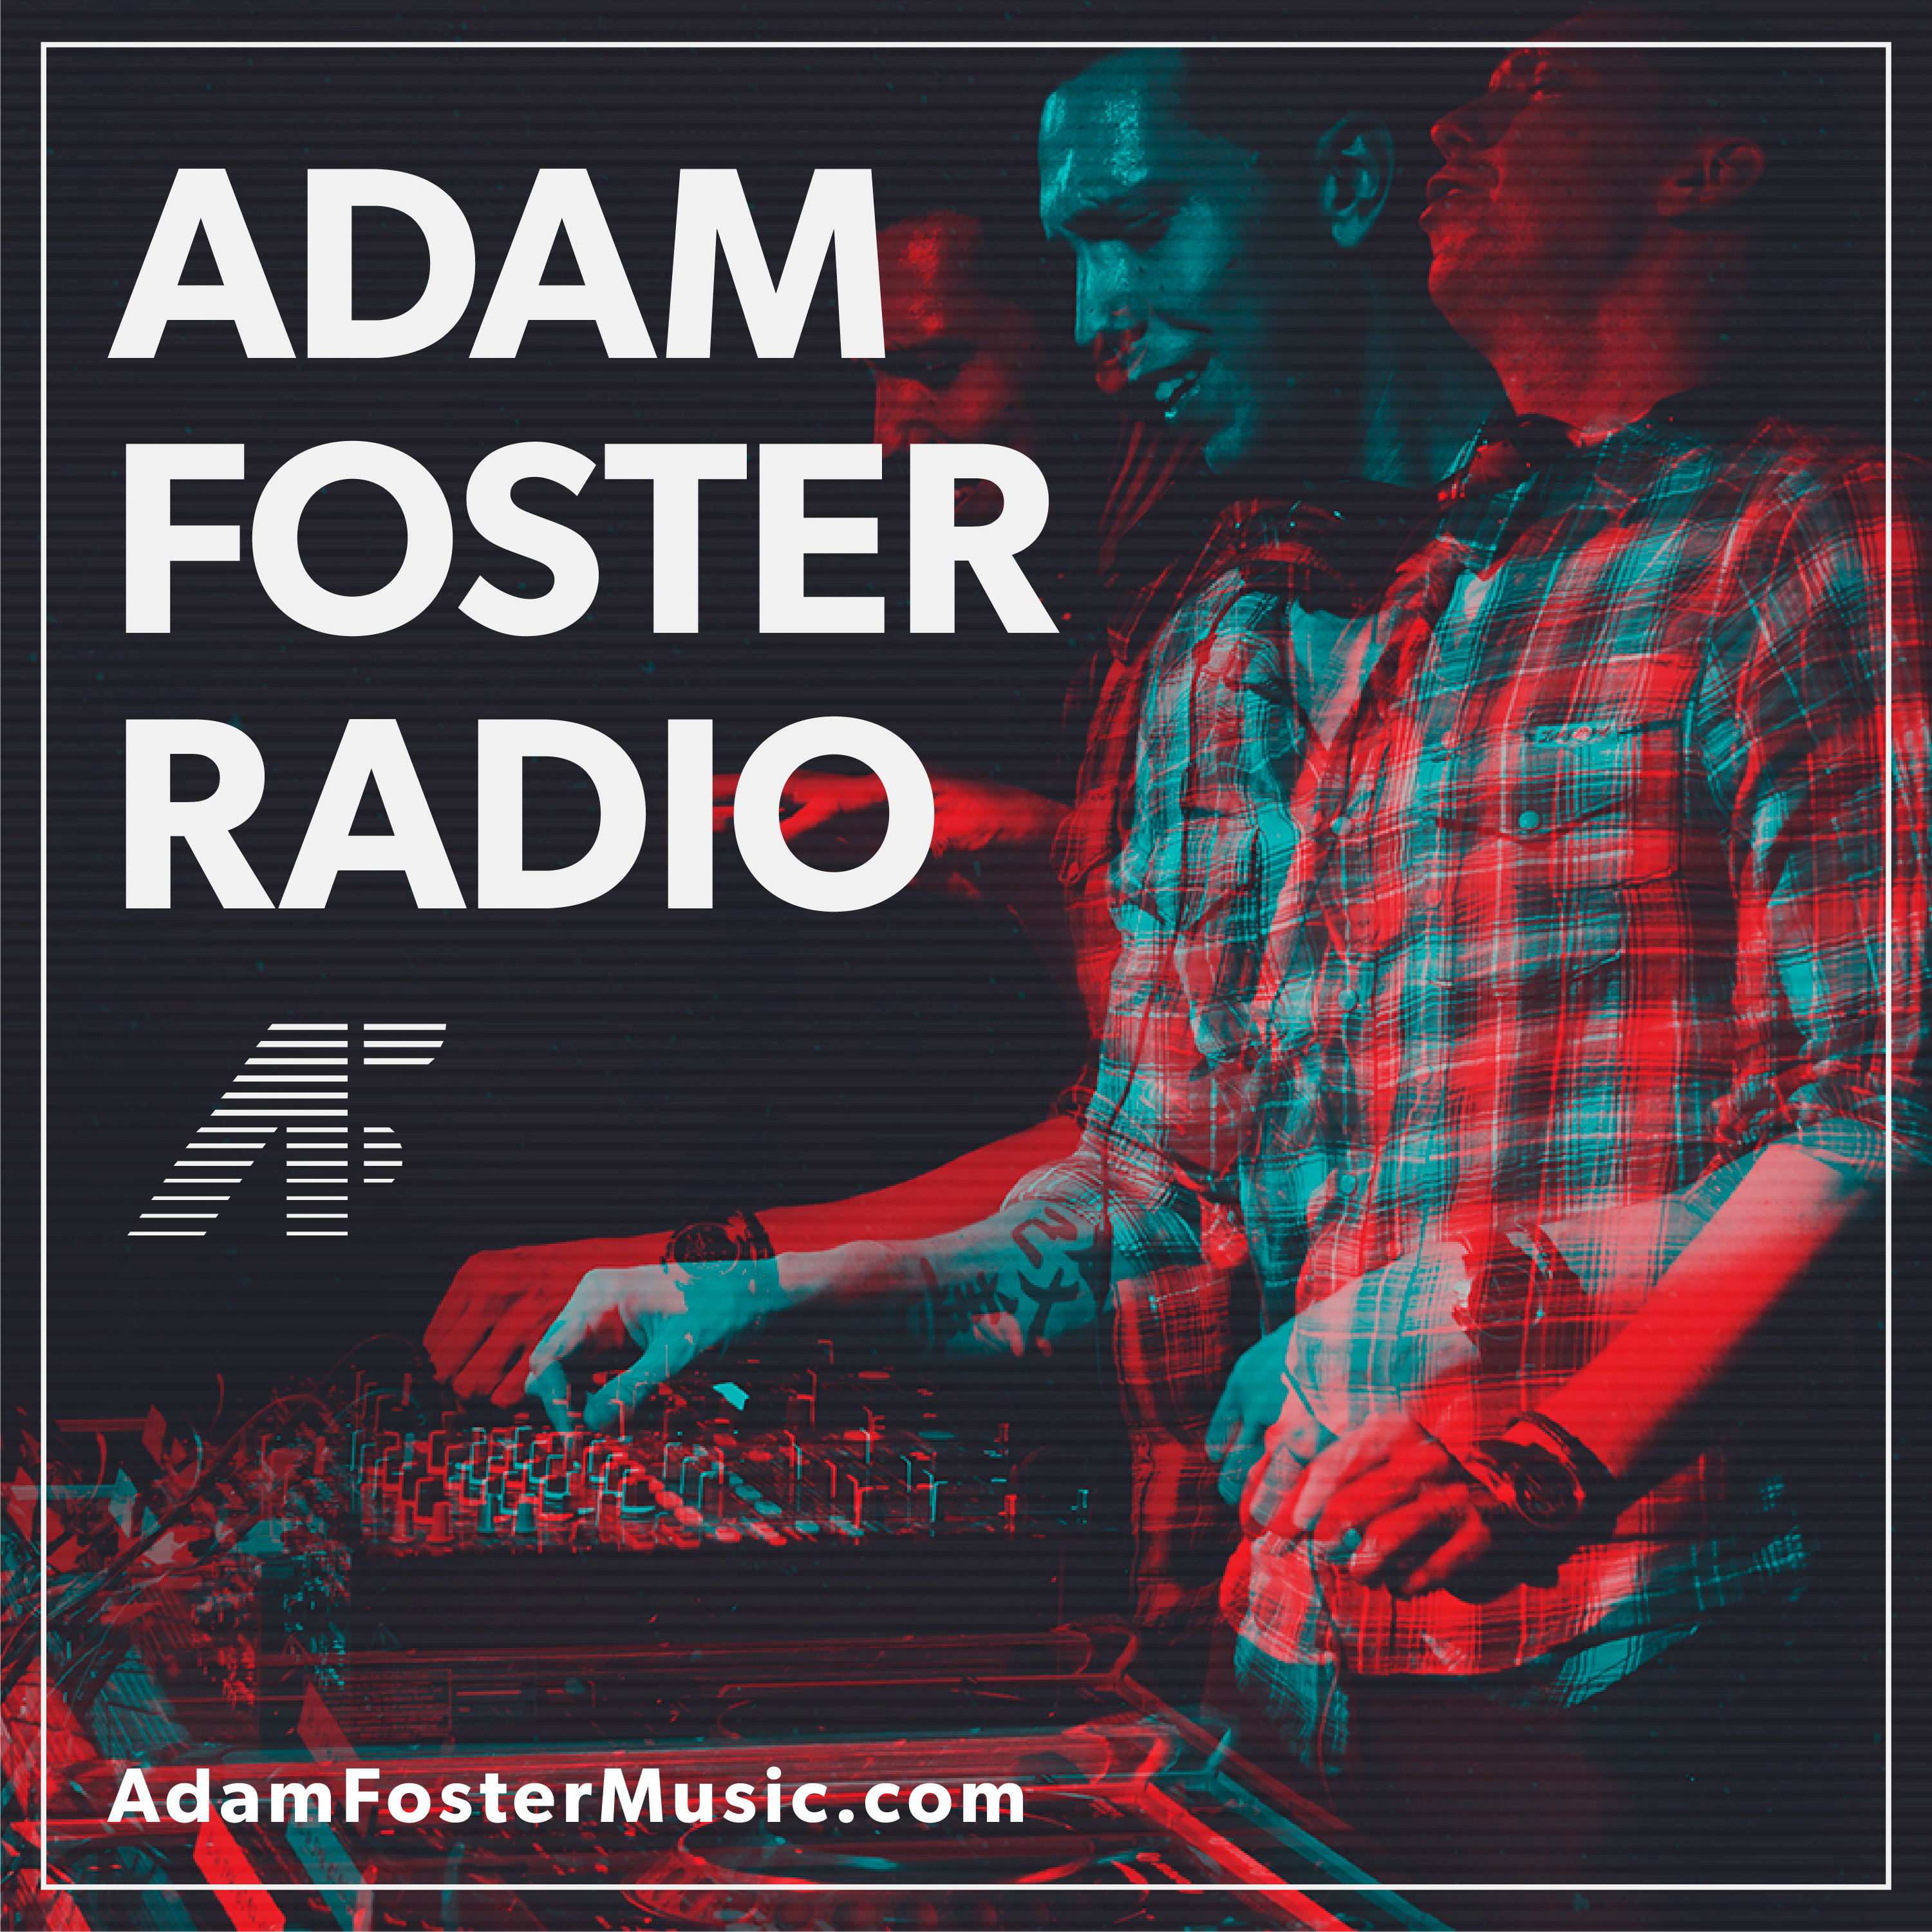 Adam Foster Radio